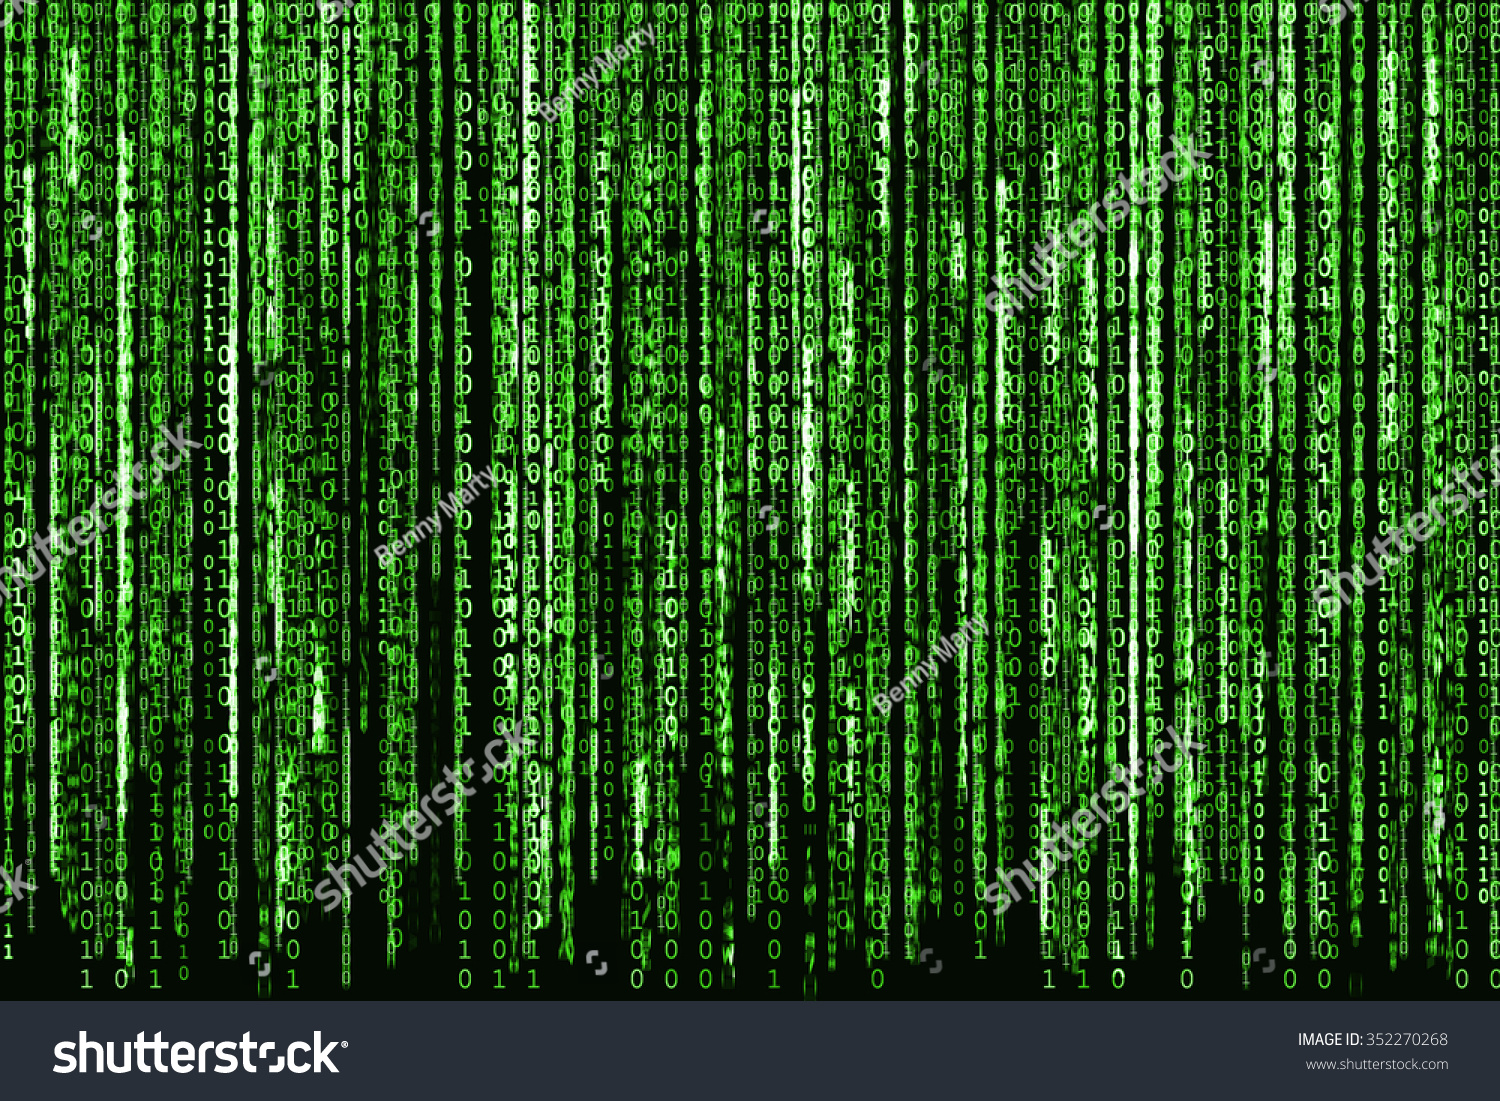 Royalty Free Stock Illustration Of Big Green Binary Code Matrix Or Photo Circuit Board Skinned Human Close Up And As Background Computer With Characters Shining